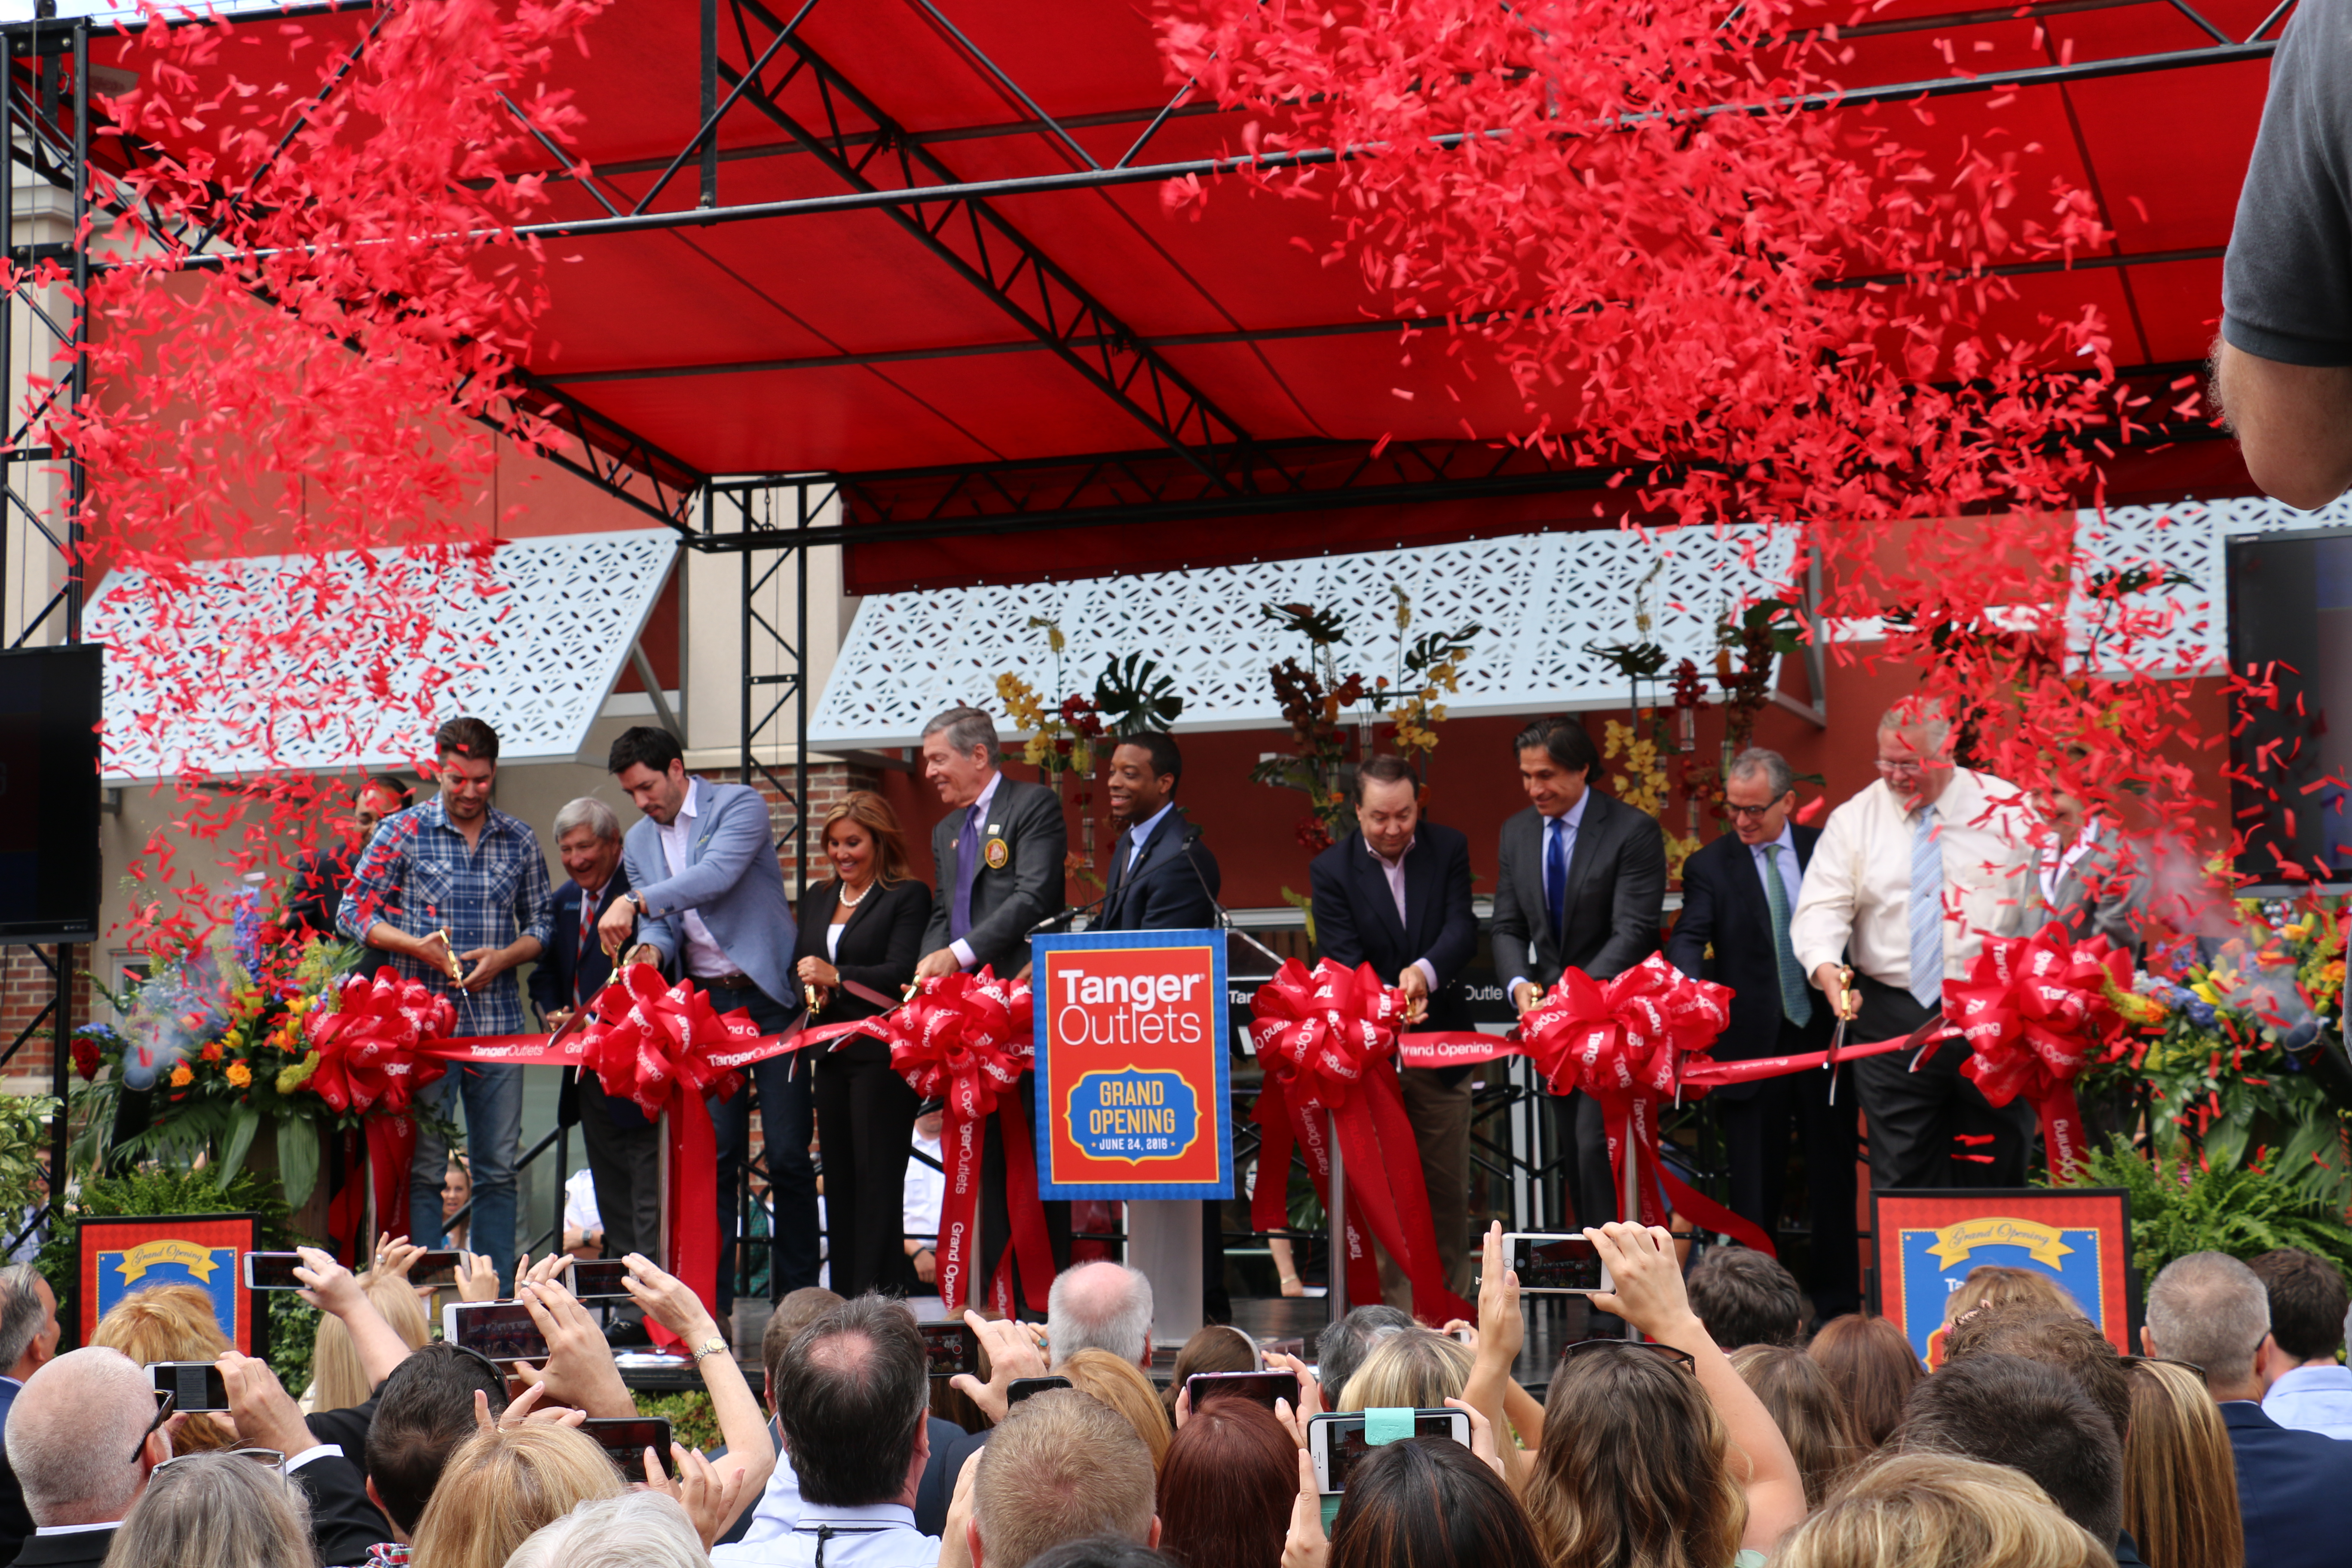 Tanger Outlets Ribbon Cutting